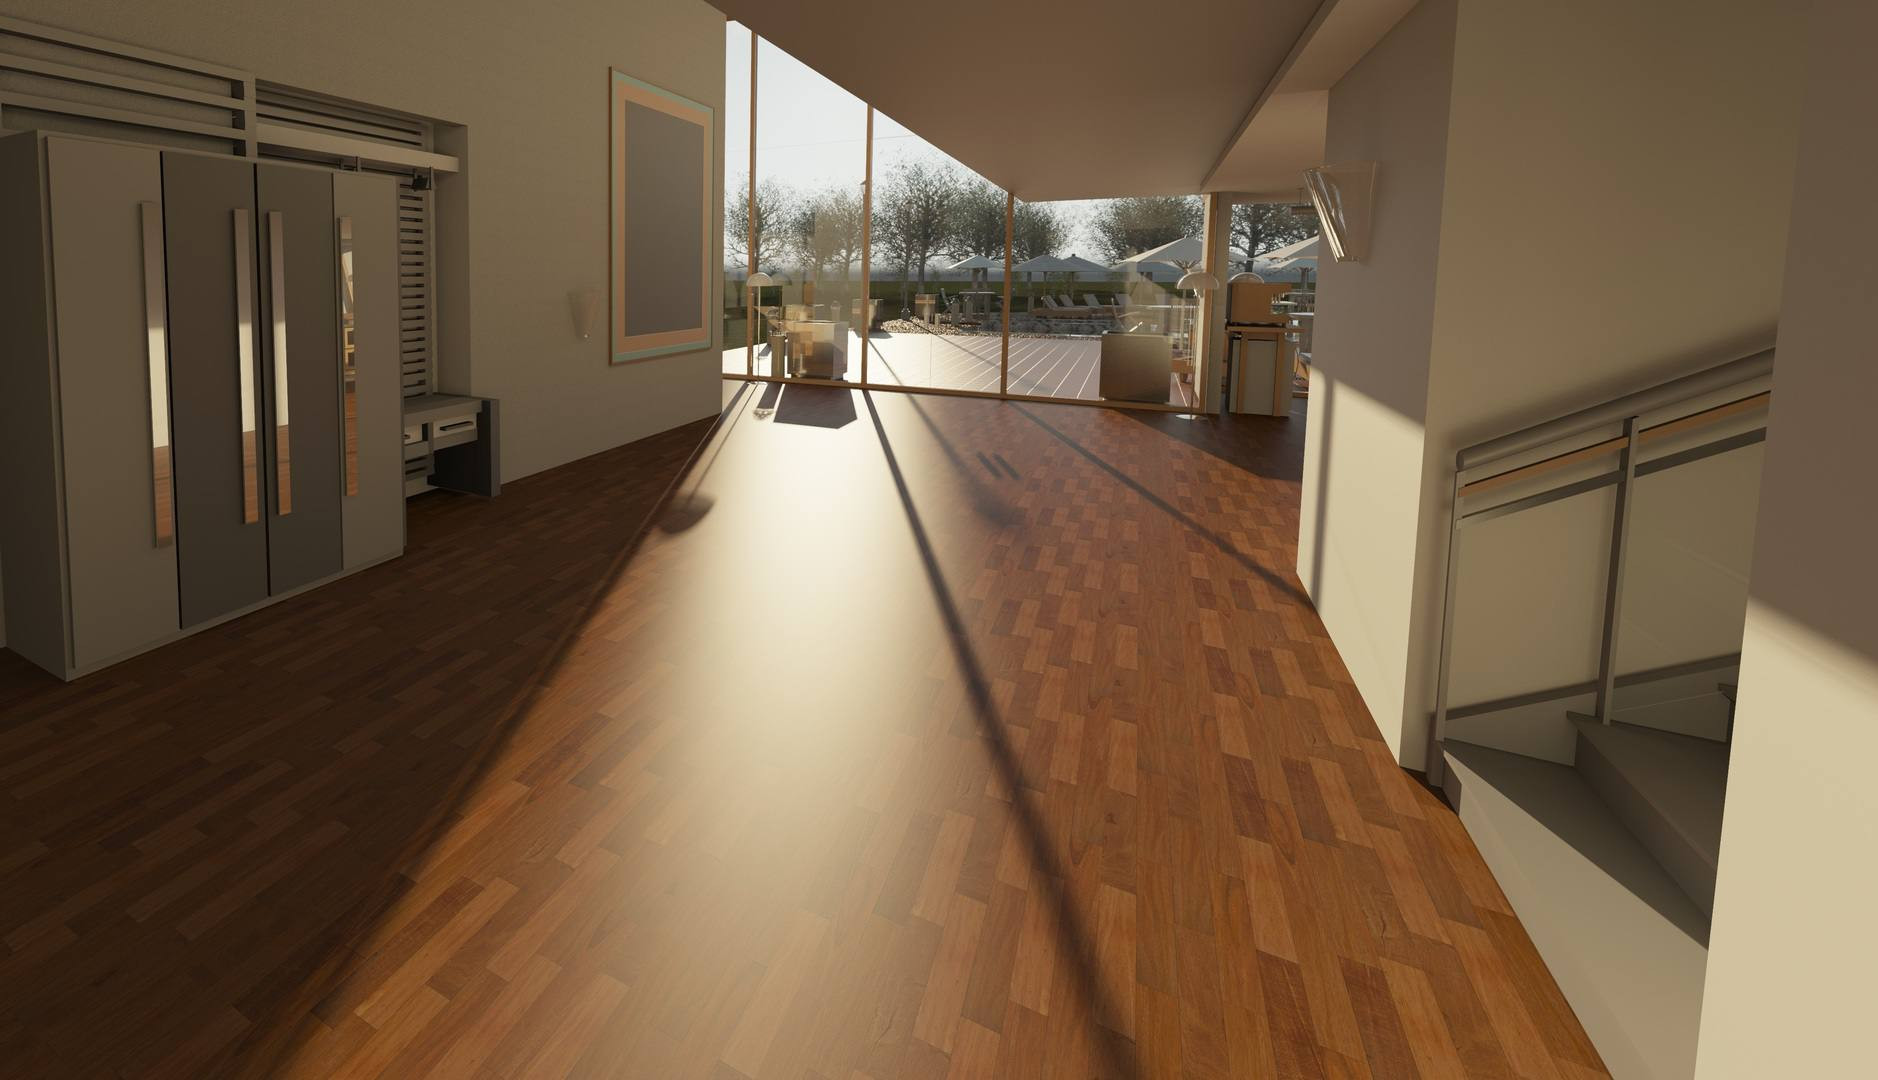 can you glue hardwood floor to concrete of common flooring types currently used in renovation and building within architecture wood house floor interior window 917178 pxhere com 5ba27a2cc9e77c00503b27b9